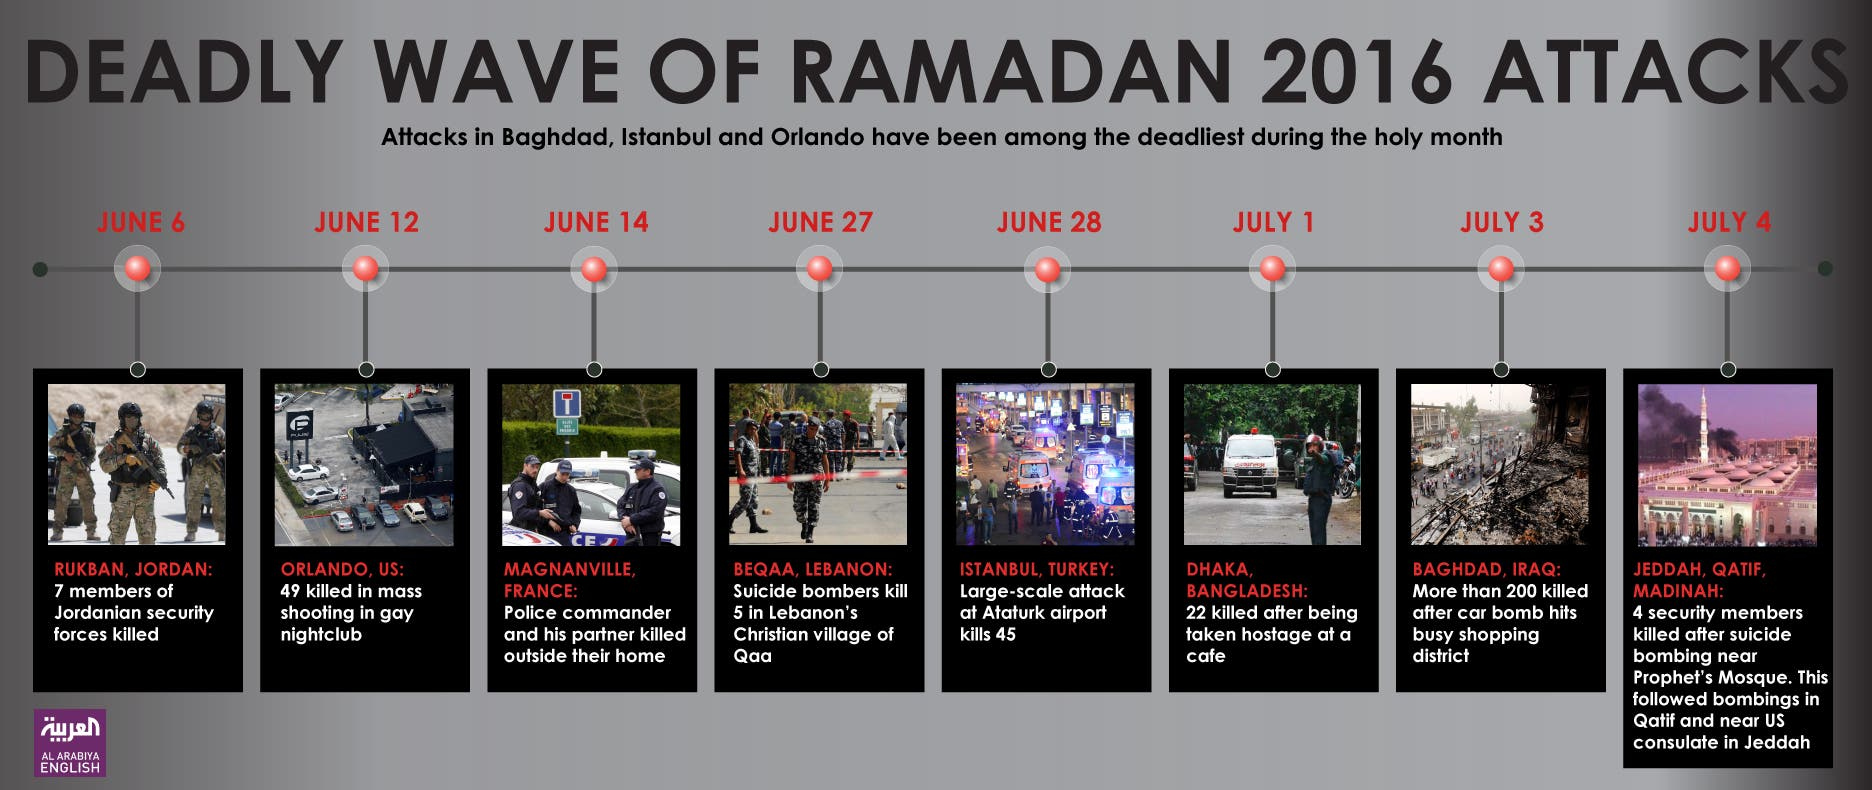 Infographic: Deadly wave of Ramadan 2016 attacks